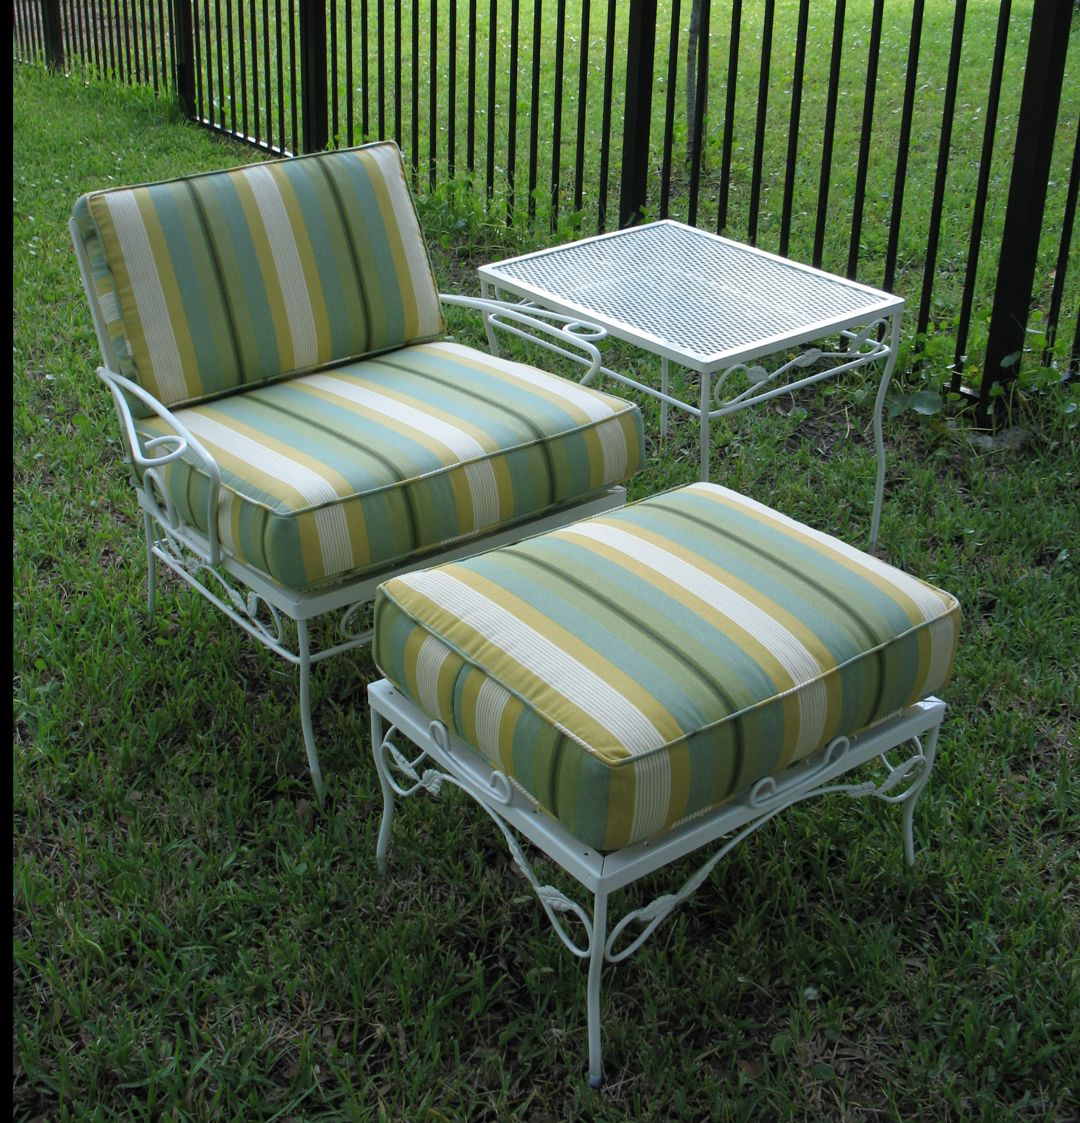 Exterior, Adorable Metal Patio Chairs Retro Decoration With Stunning White  Iron Material And Comfortable Green Beige Plus Black Striped Thick Padded  Seat ... - Vintage Metal Furniture Vintage Patio Furniture Mulberry